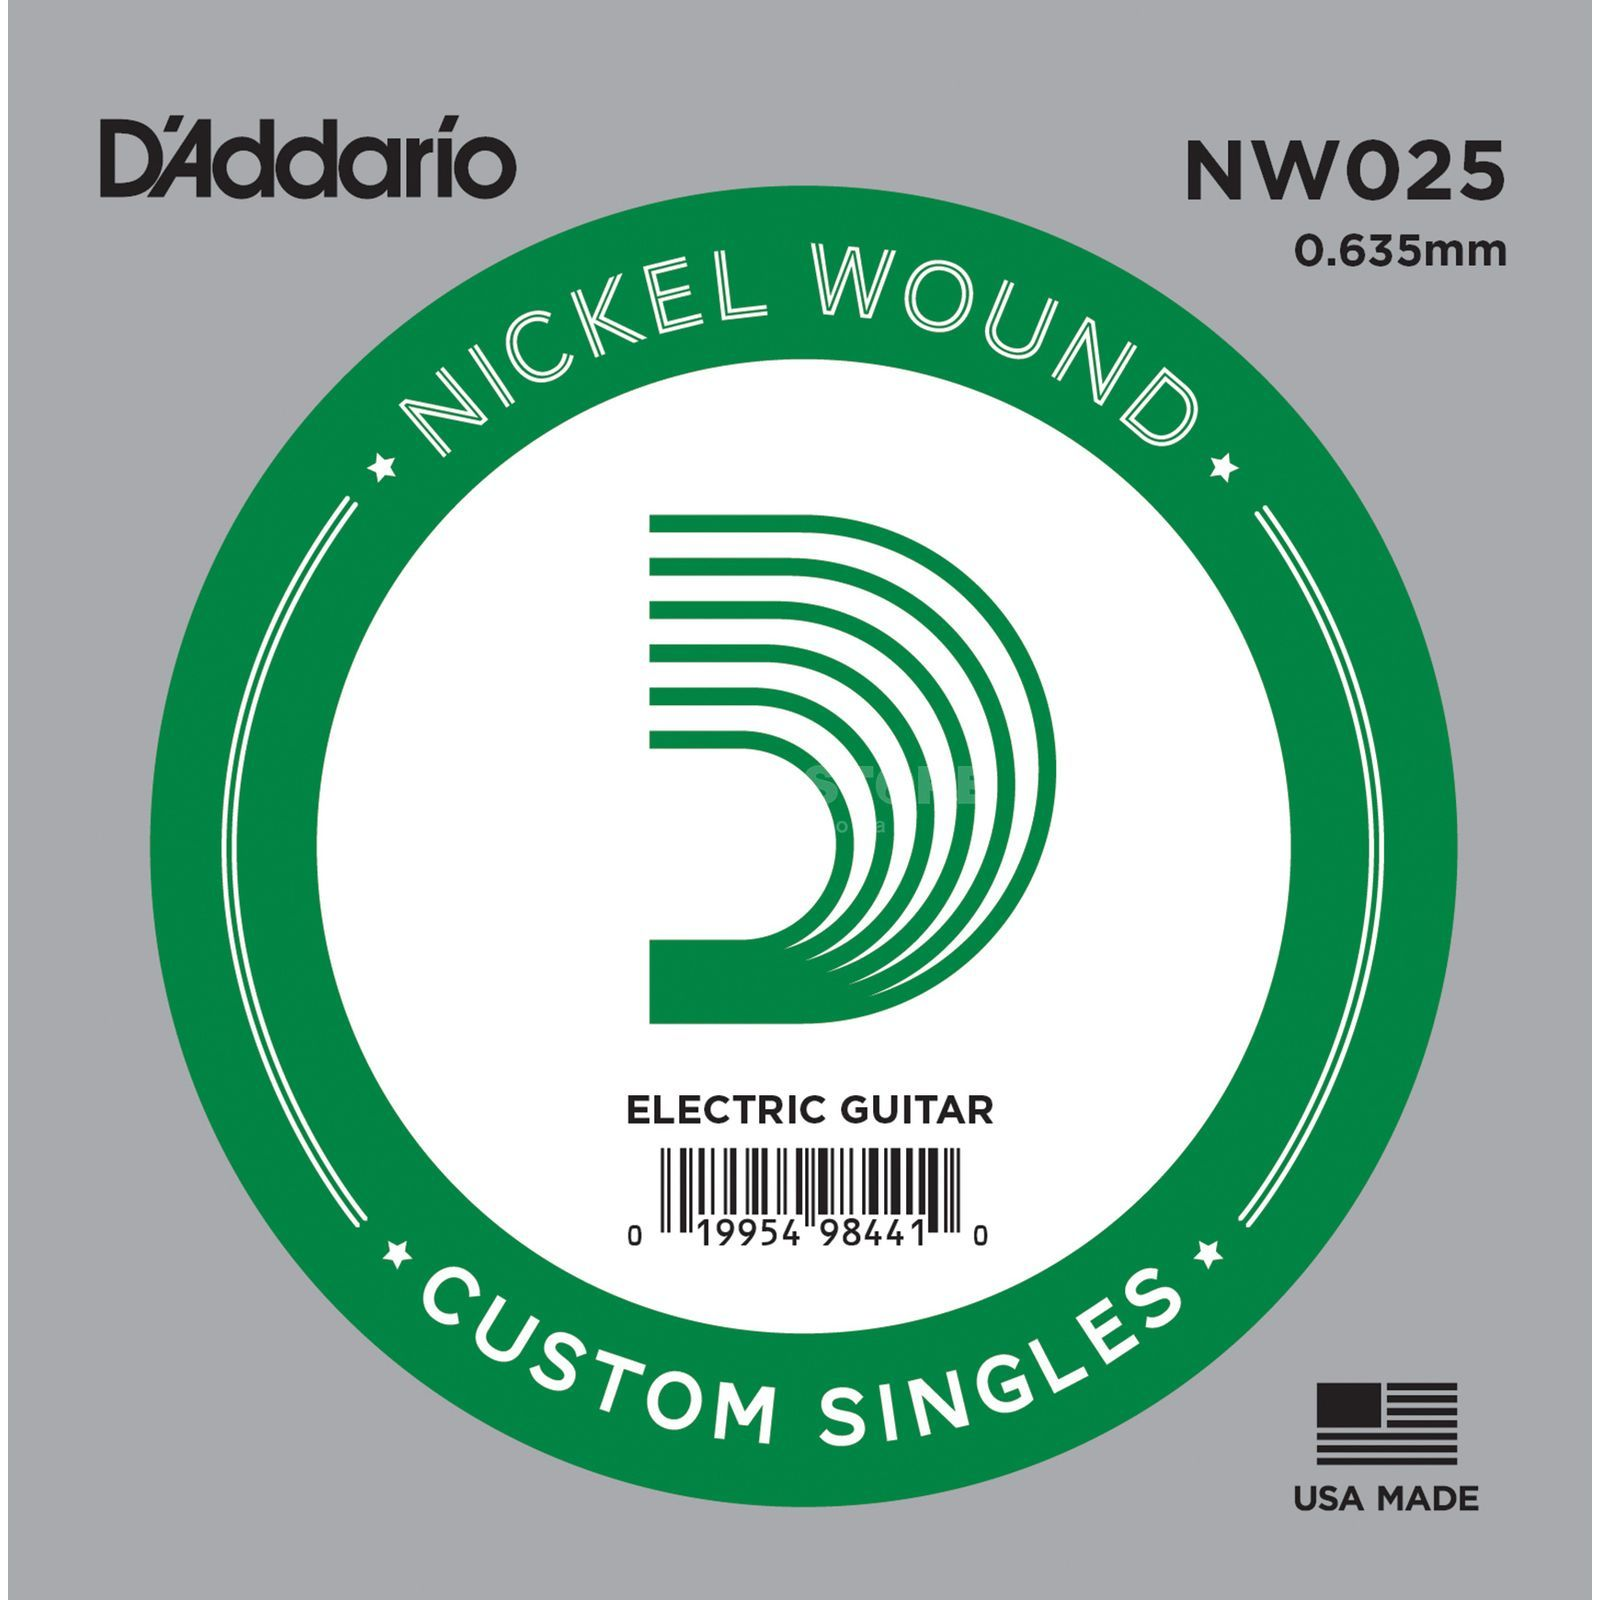 D'Addario Single String NW025 Nickelwound Produktbillede